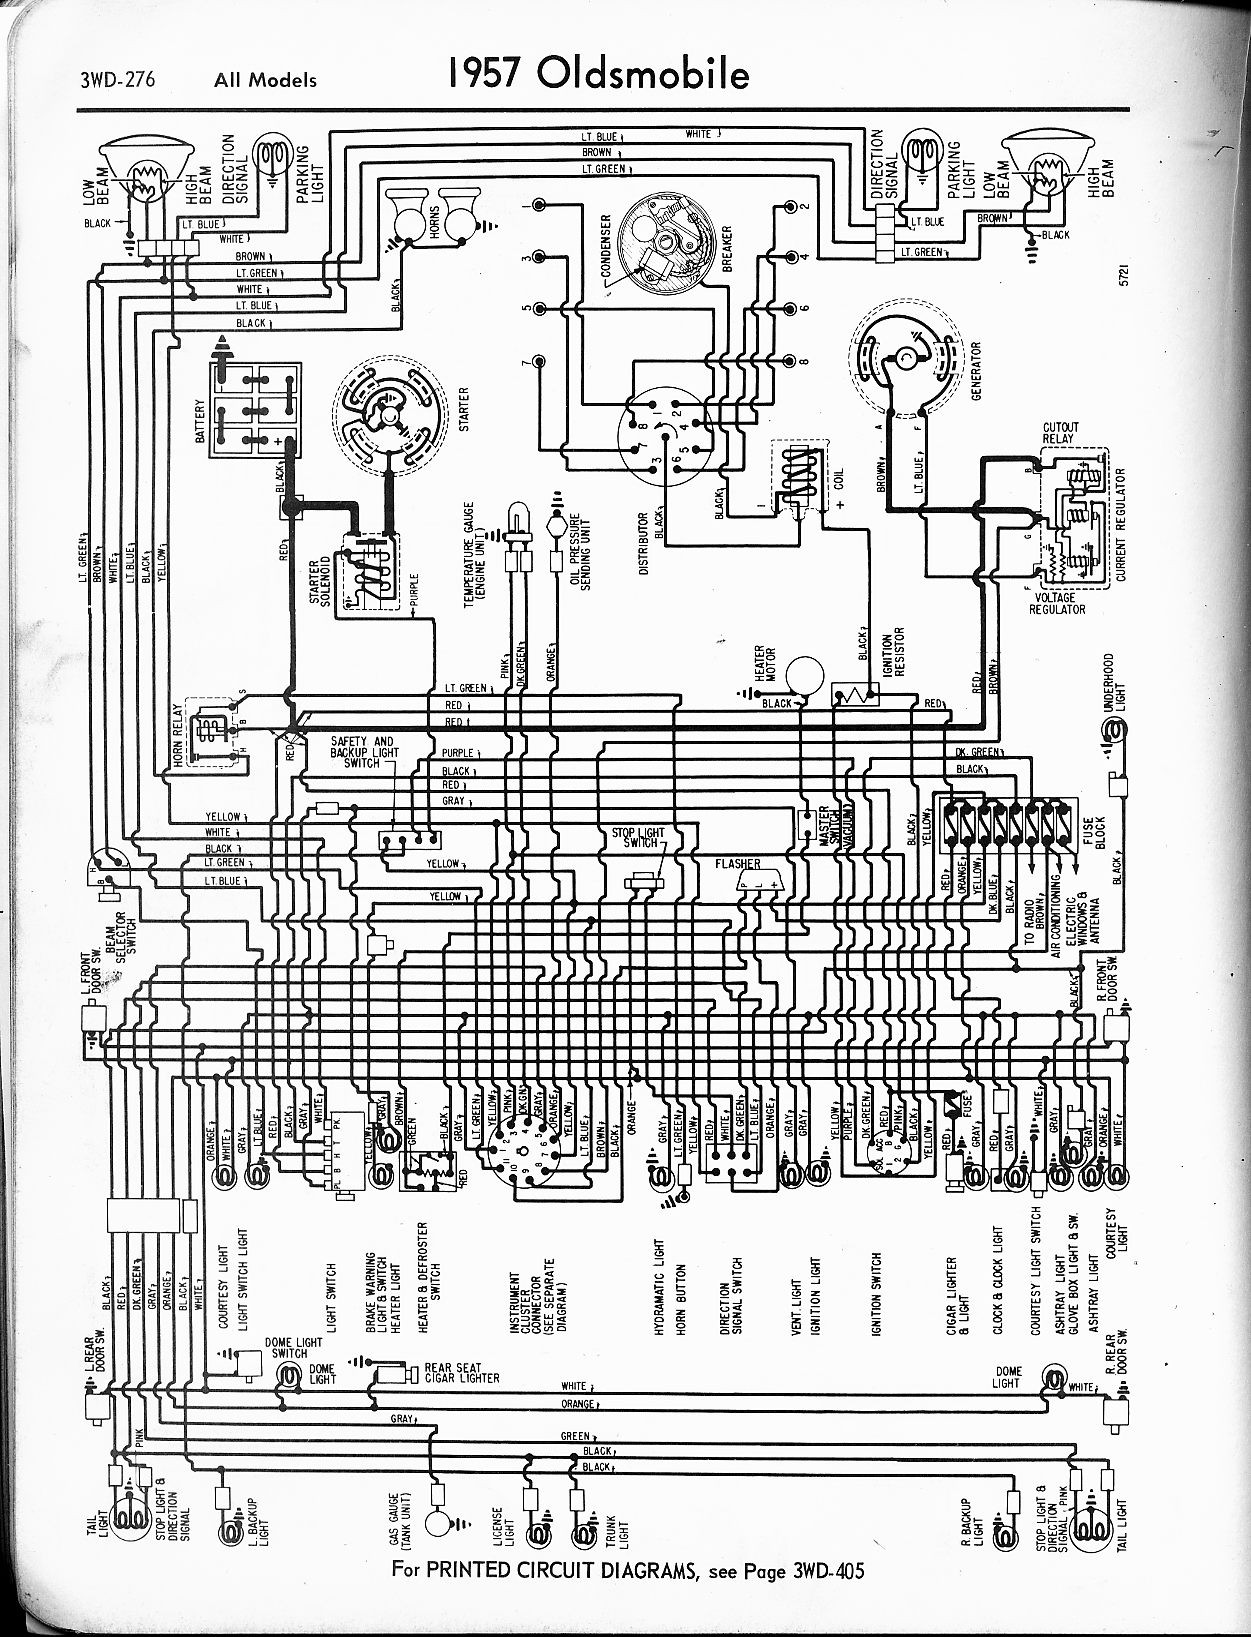 1956 chevy truck wiring harness 68 chevy truck wiring harness 68 chevy truck wiring diagram my wiring diagram